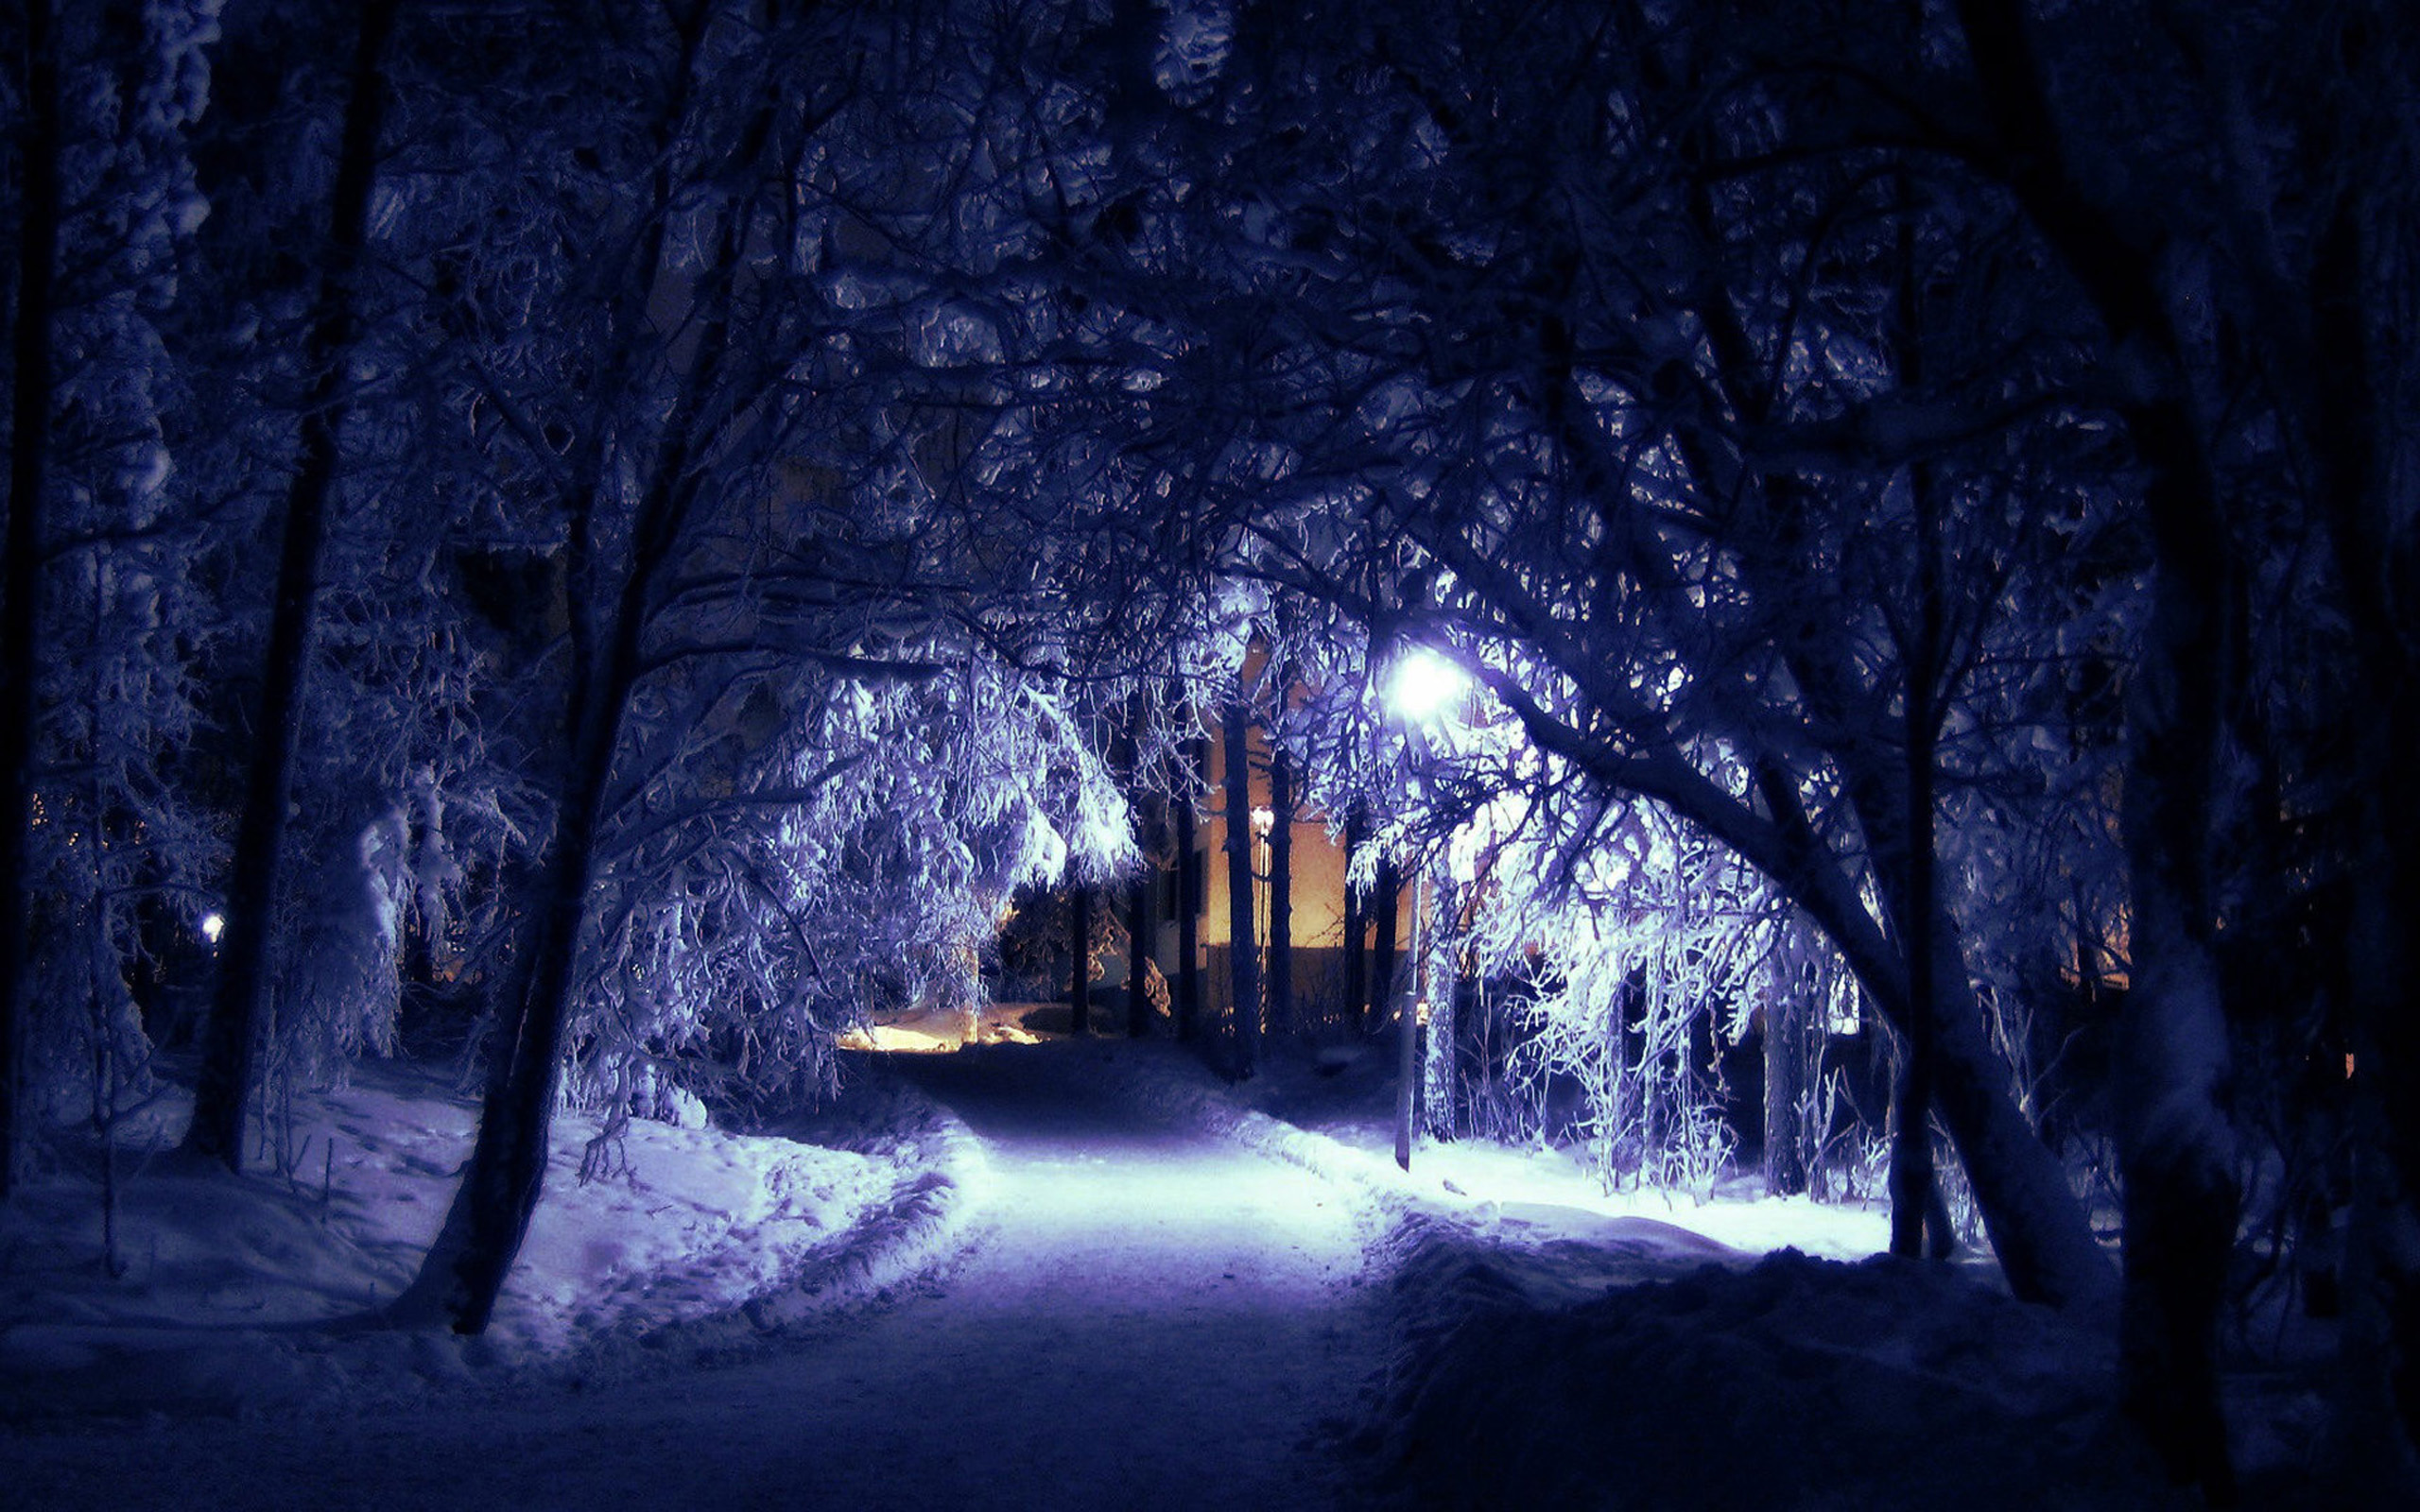 Gallery For gt Winter Night Wallpapers Hd 2560x1600